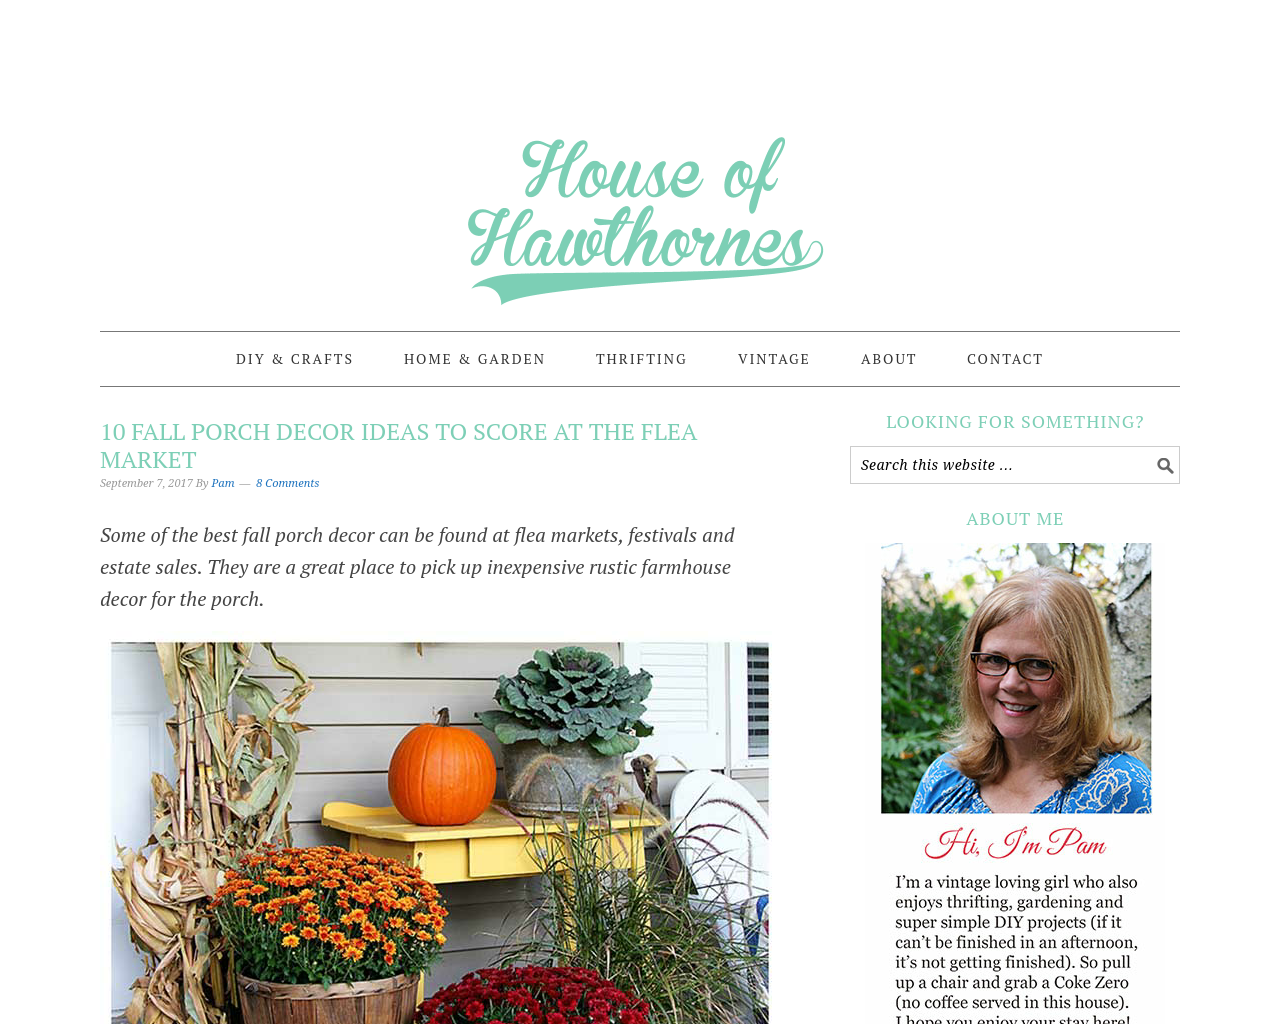 House-of-Hawthornes-Advertising-Reviews-Pricing